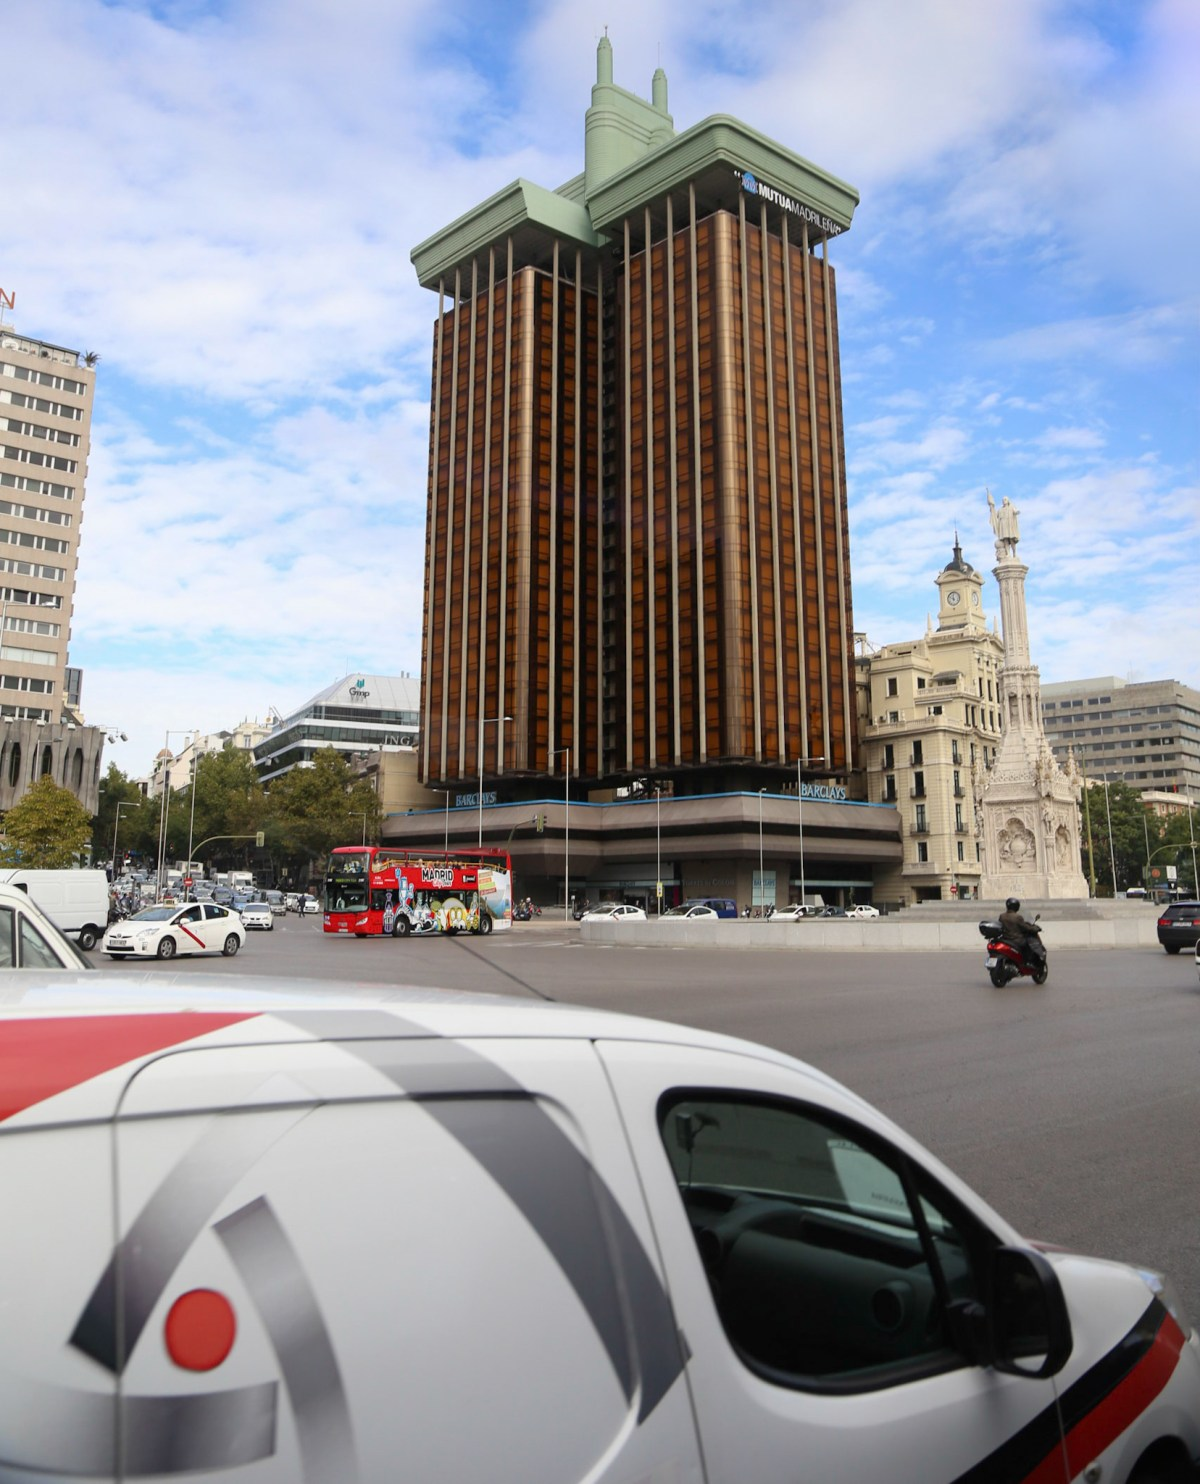 Paseo de la Castellana, one of the longest and widest avenues of Madrid